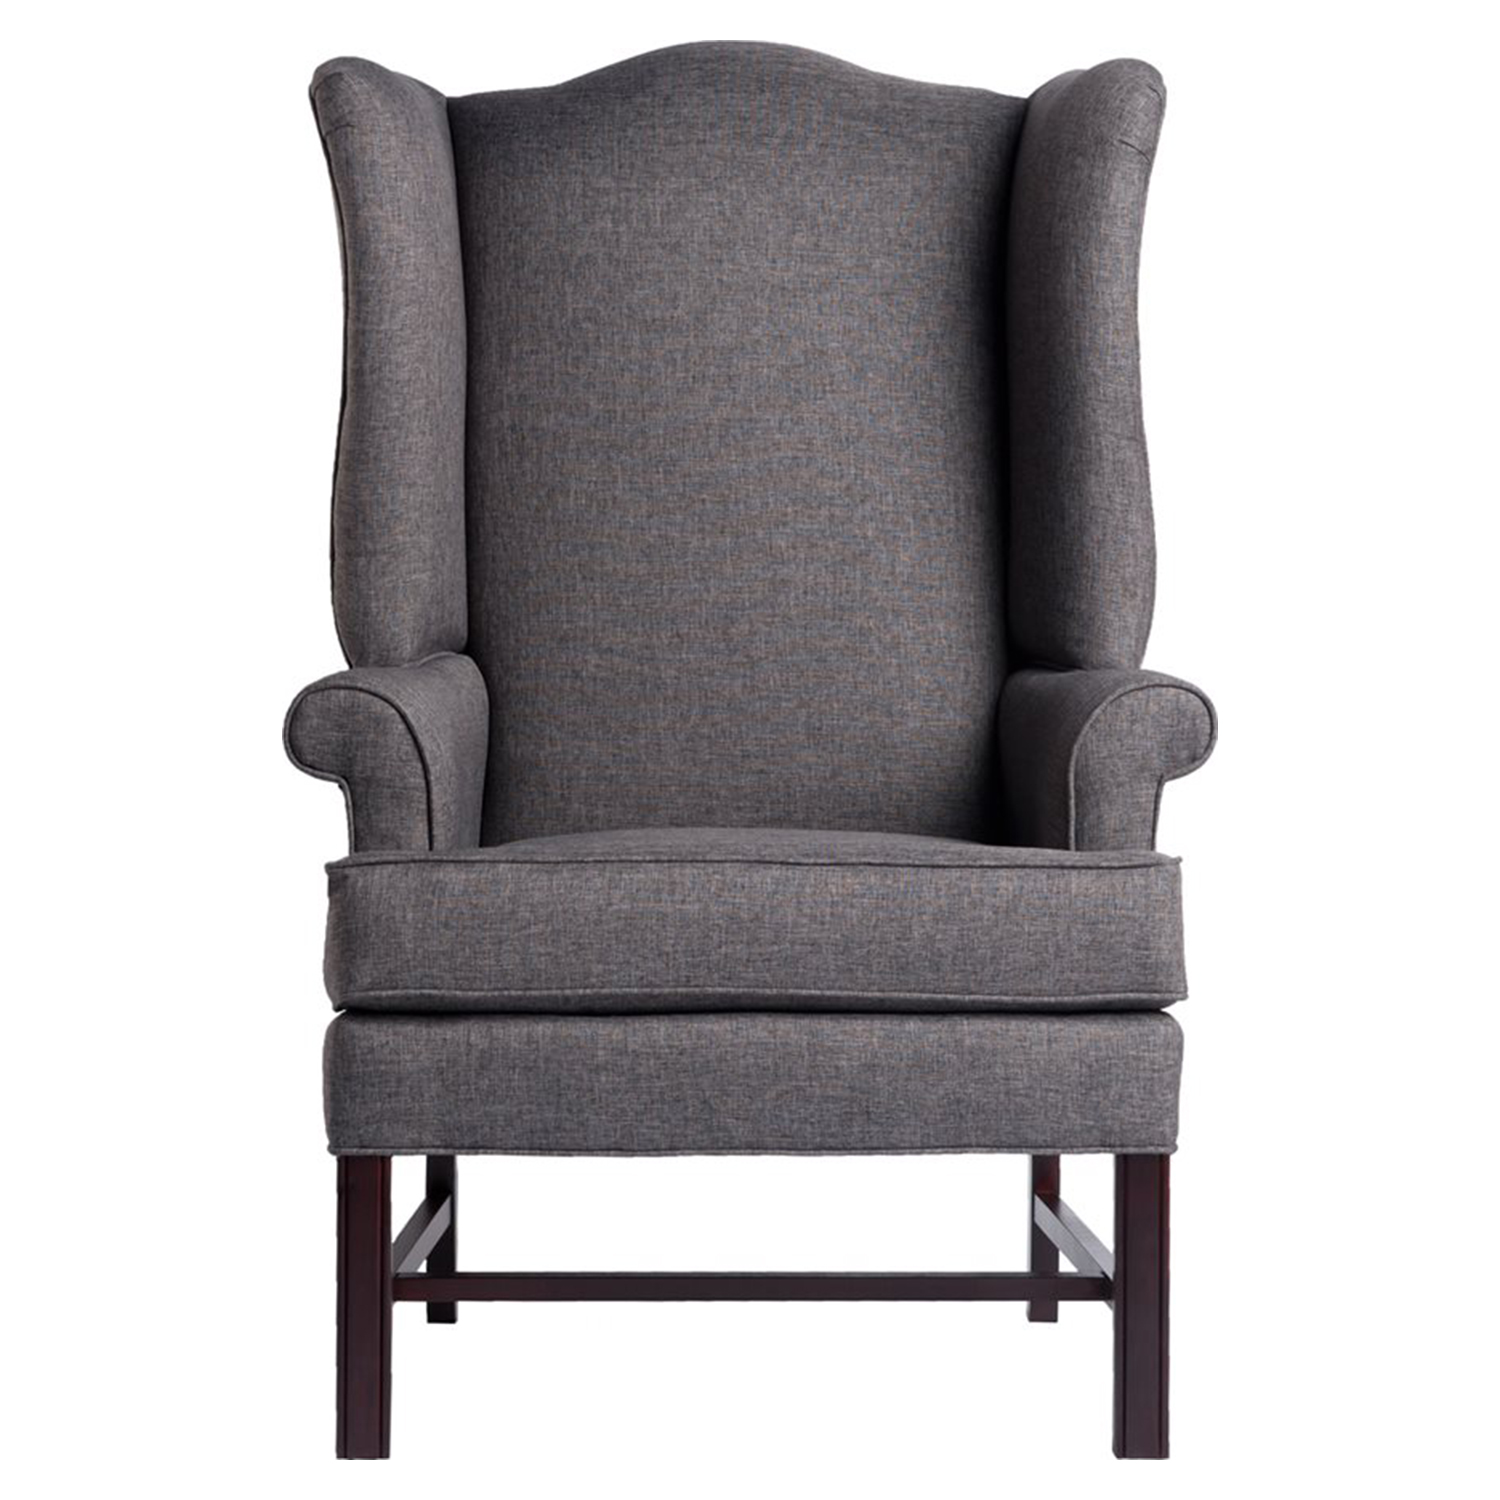 Chippendale Wingback Chair - Jitterbug Gray, Cherry - CP-8000-02